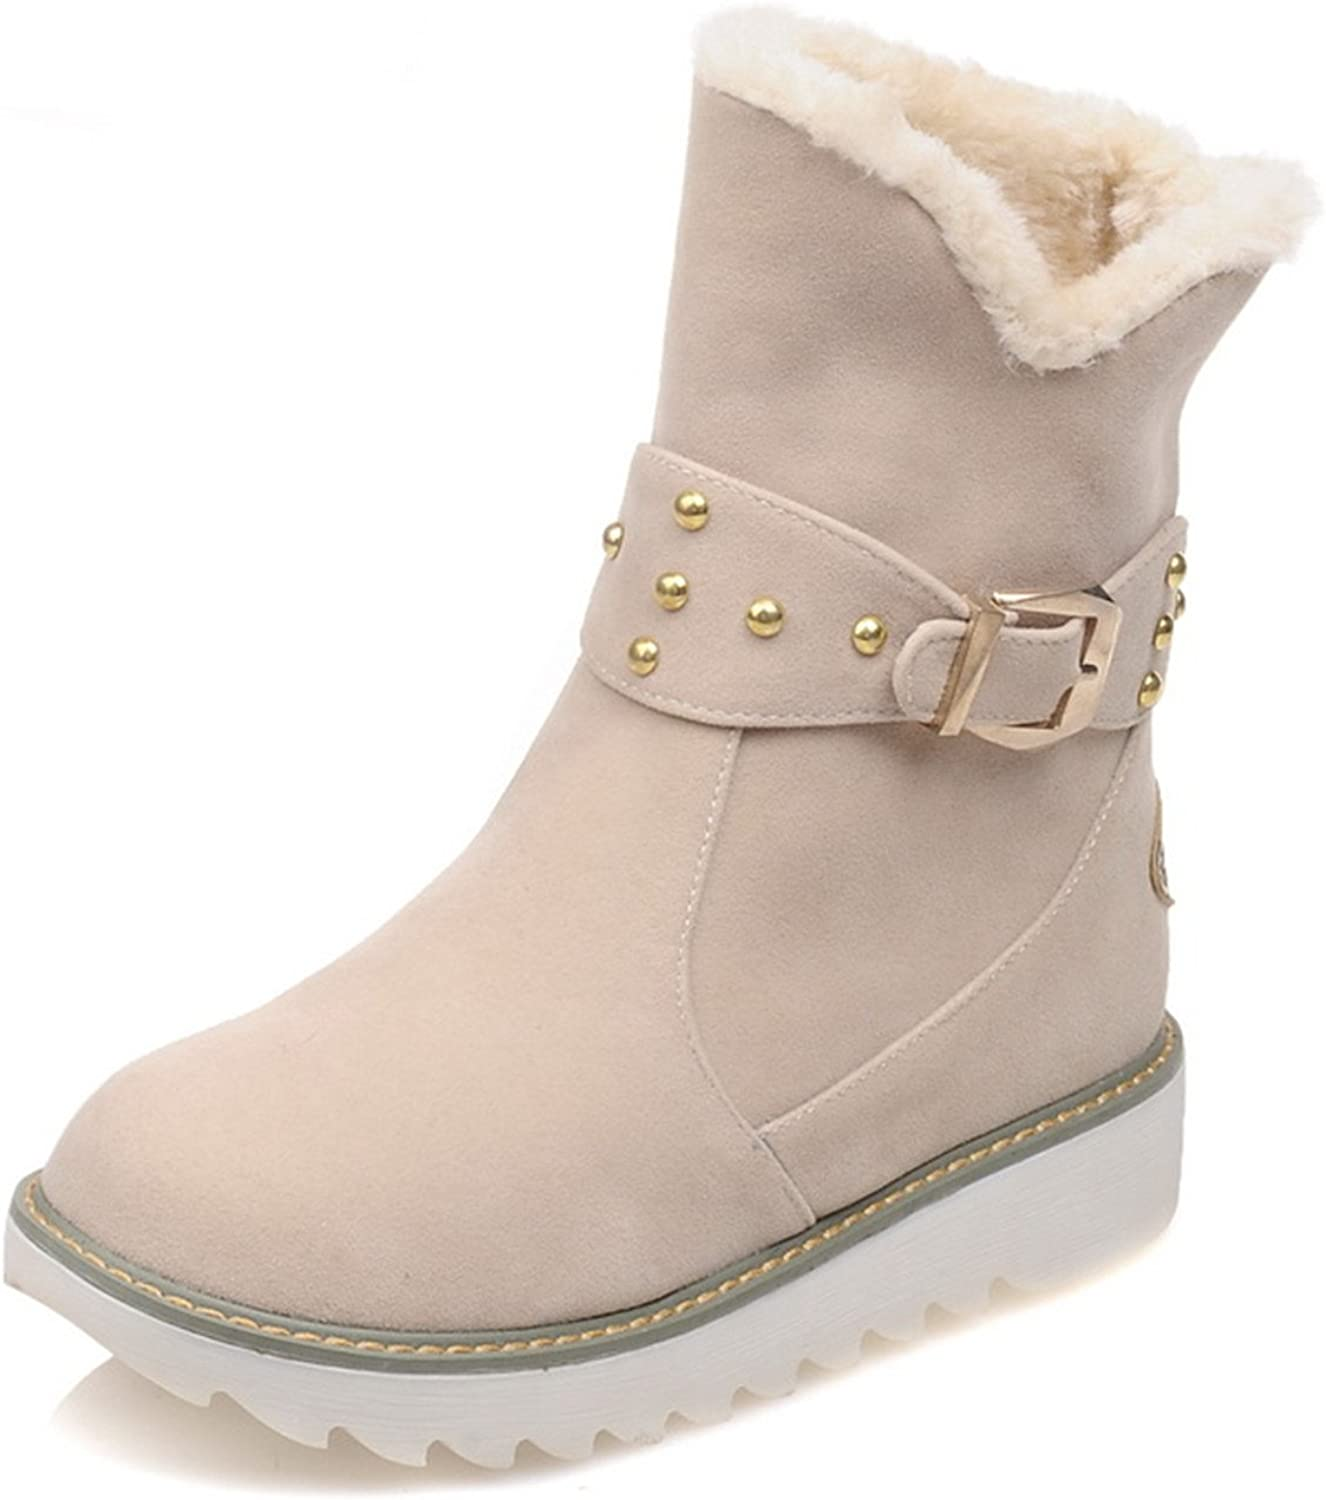 Dahanyi Stylish Warm Faux Fur Waterproof Snow Boots Women Winter Fashion Ankle Boots Big Size Black Brown Beige color